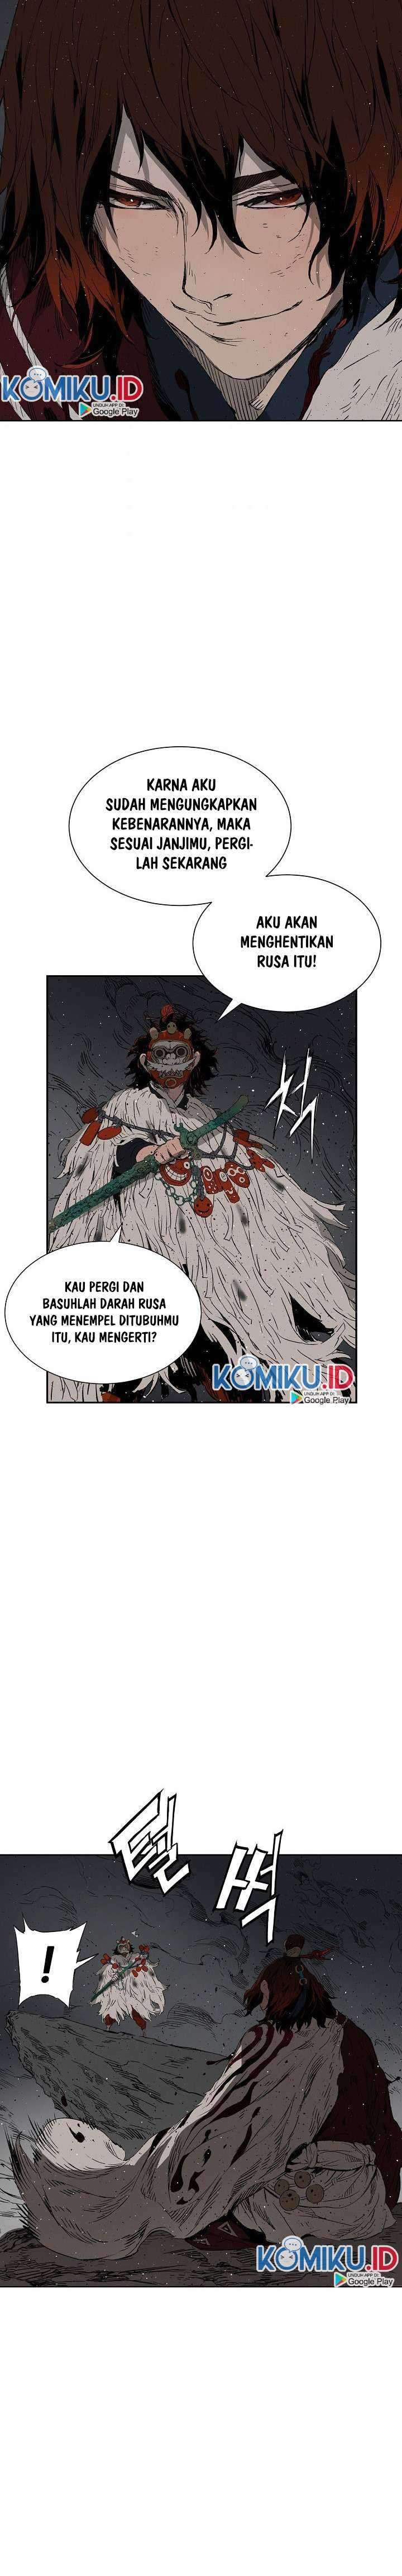 Sword Sheath's Child Chapter 54 Bahasa Indonesia page 19